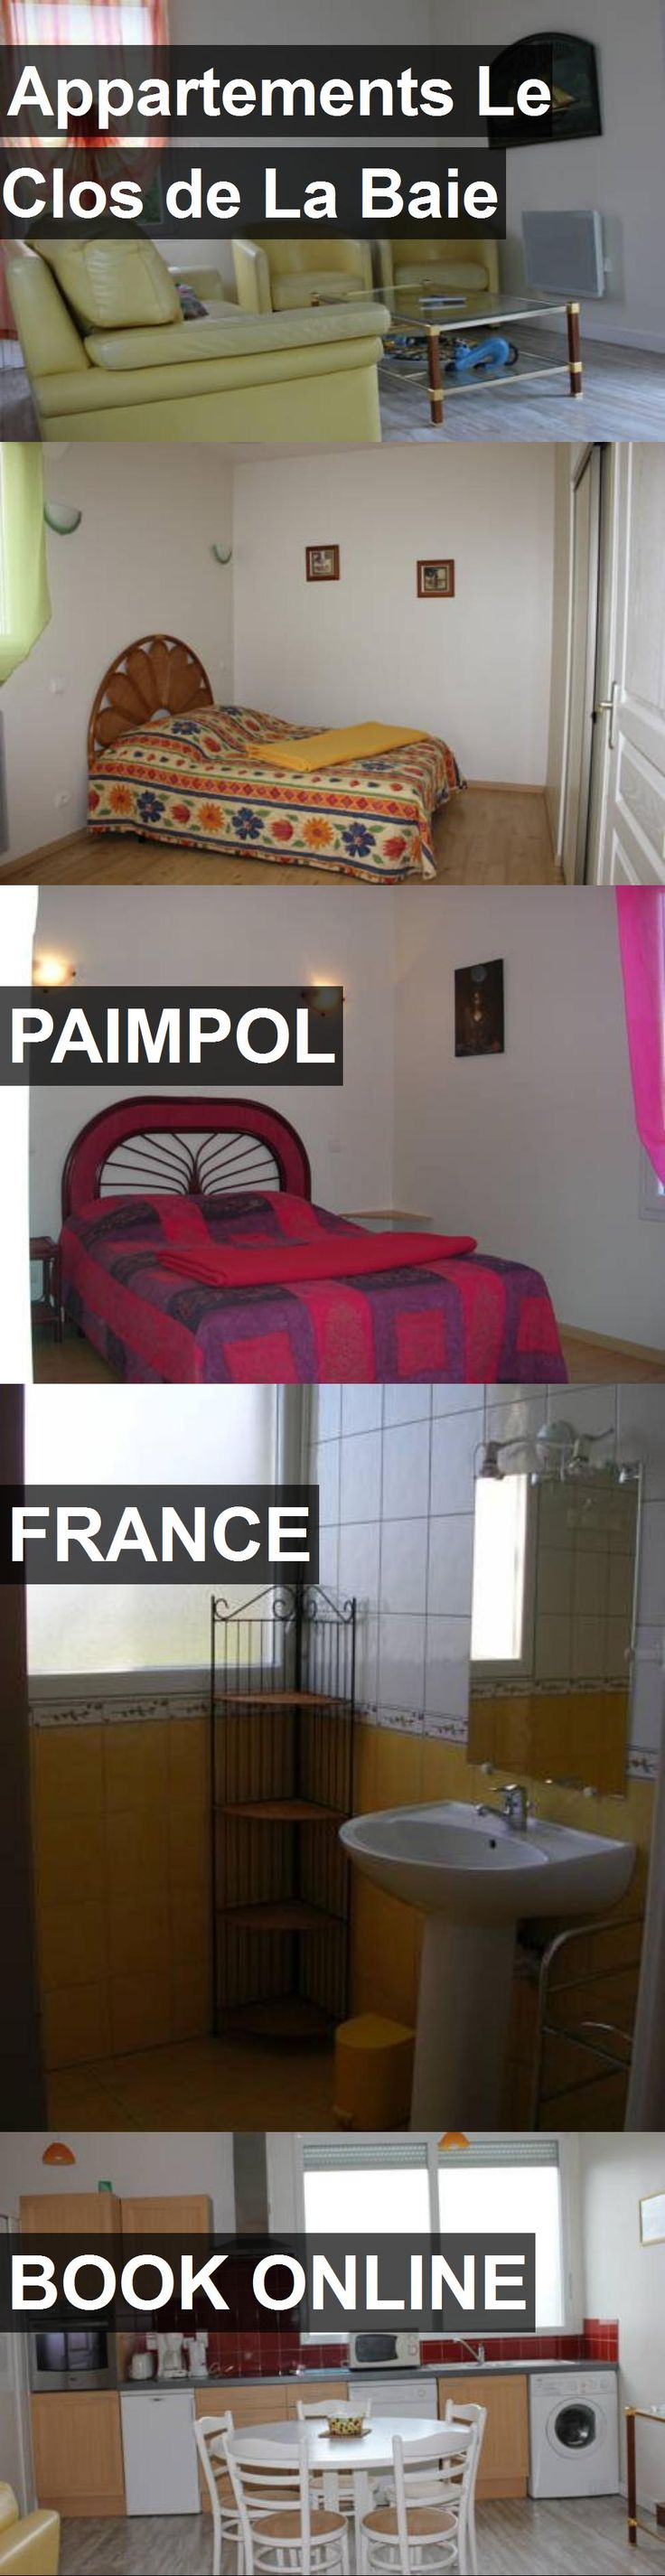 Hotel Appartements Le Clos de La Baie in Paimpol, France. For more information, photos, reviews and best prices please follow the link. #France #Paimpol #travel #vacation #hotel